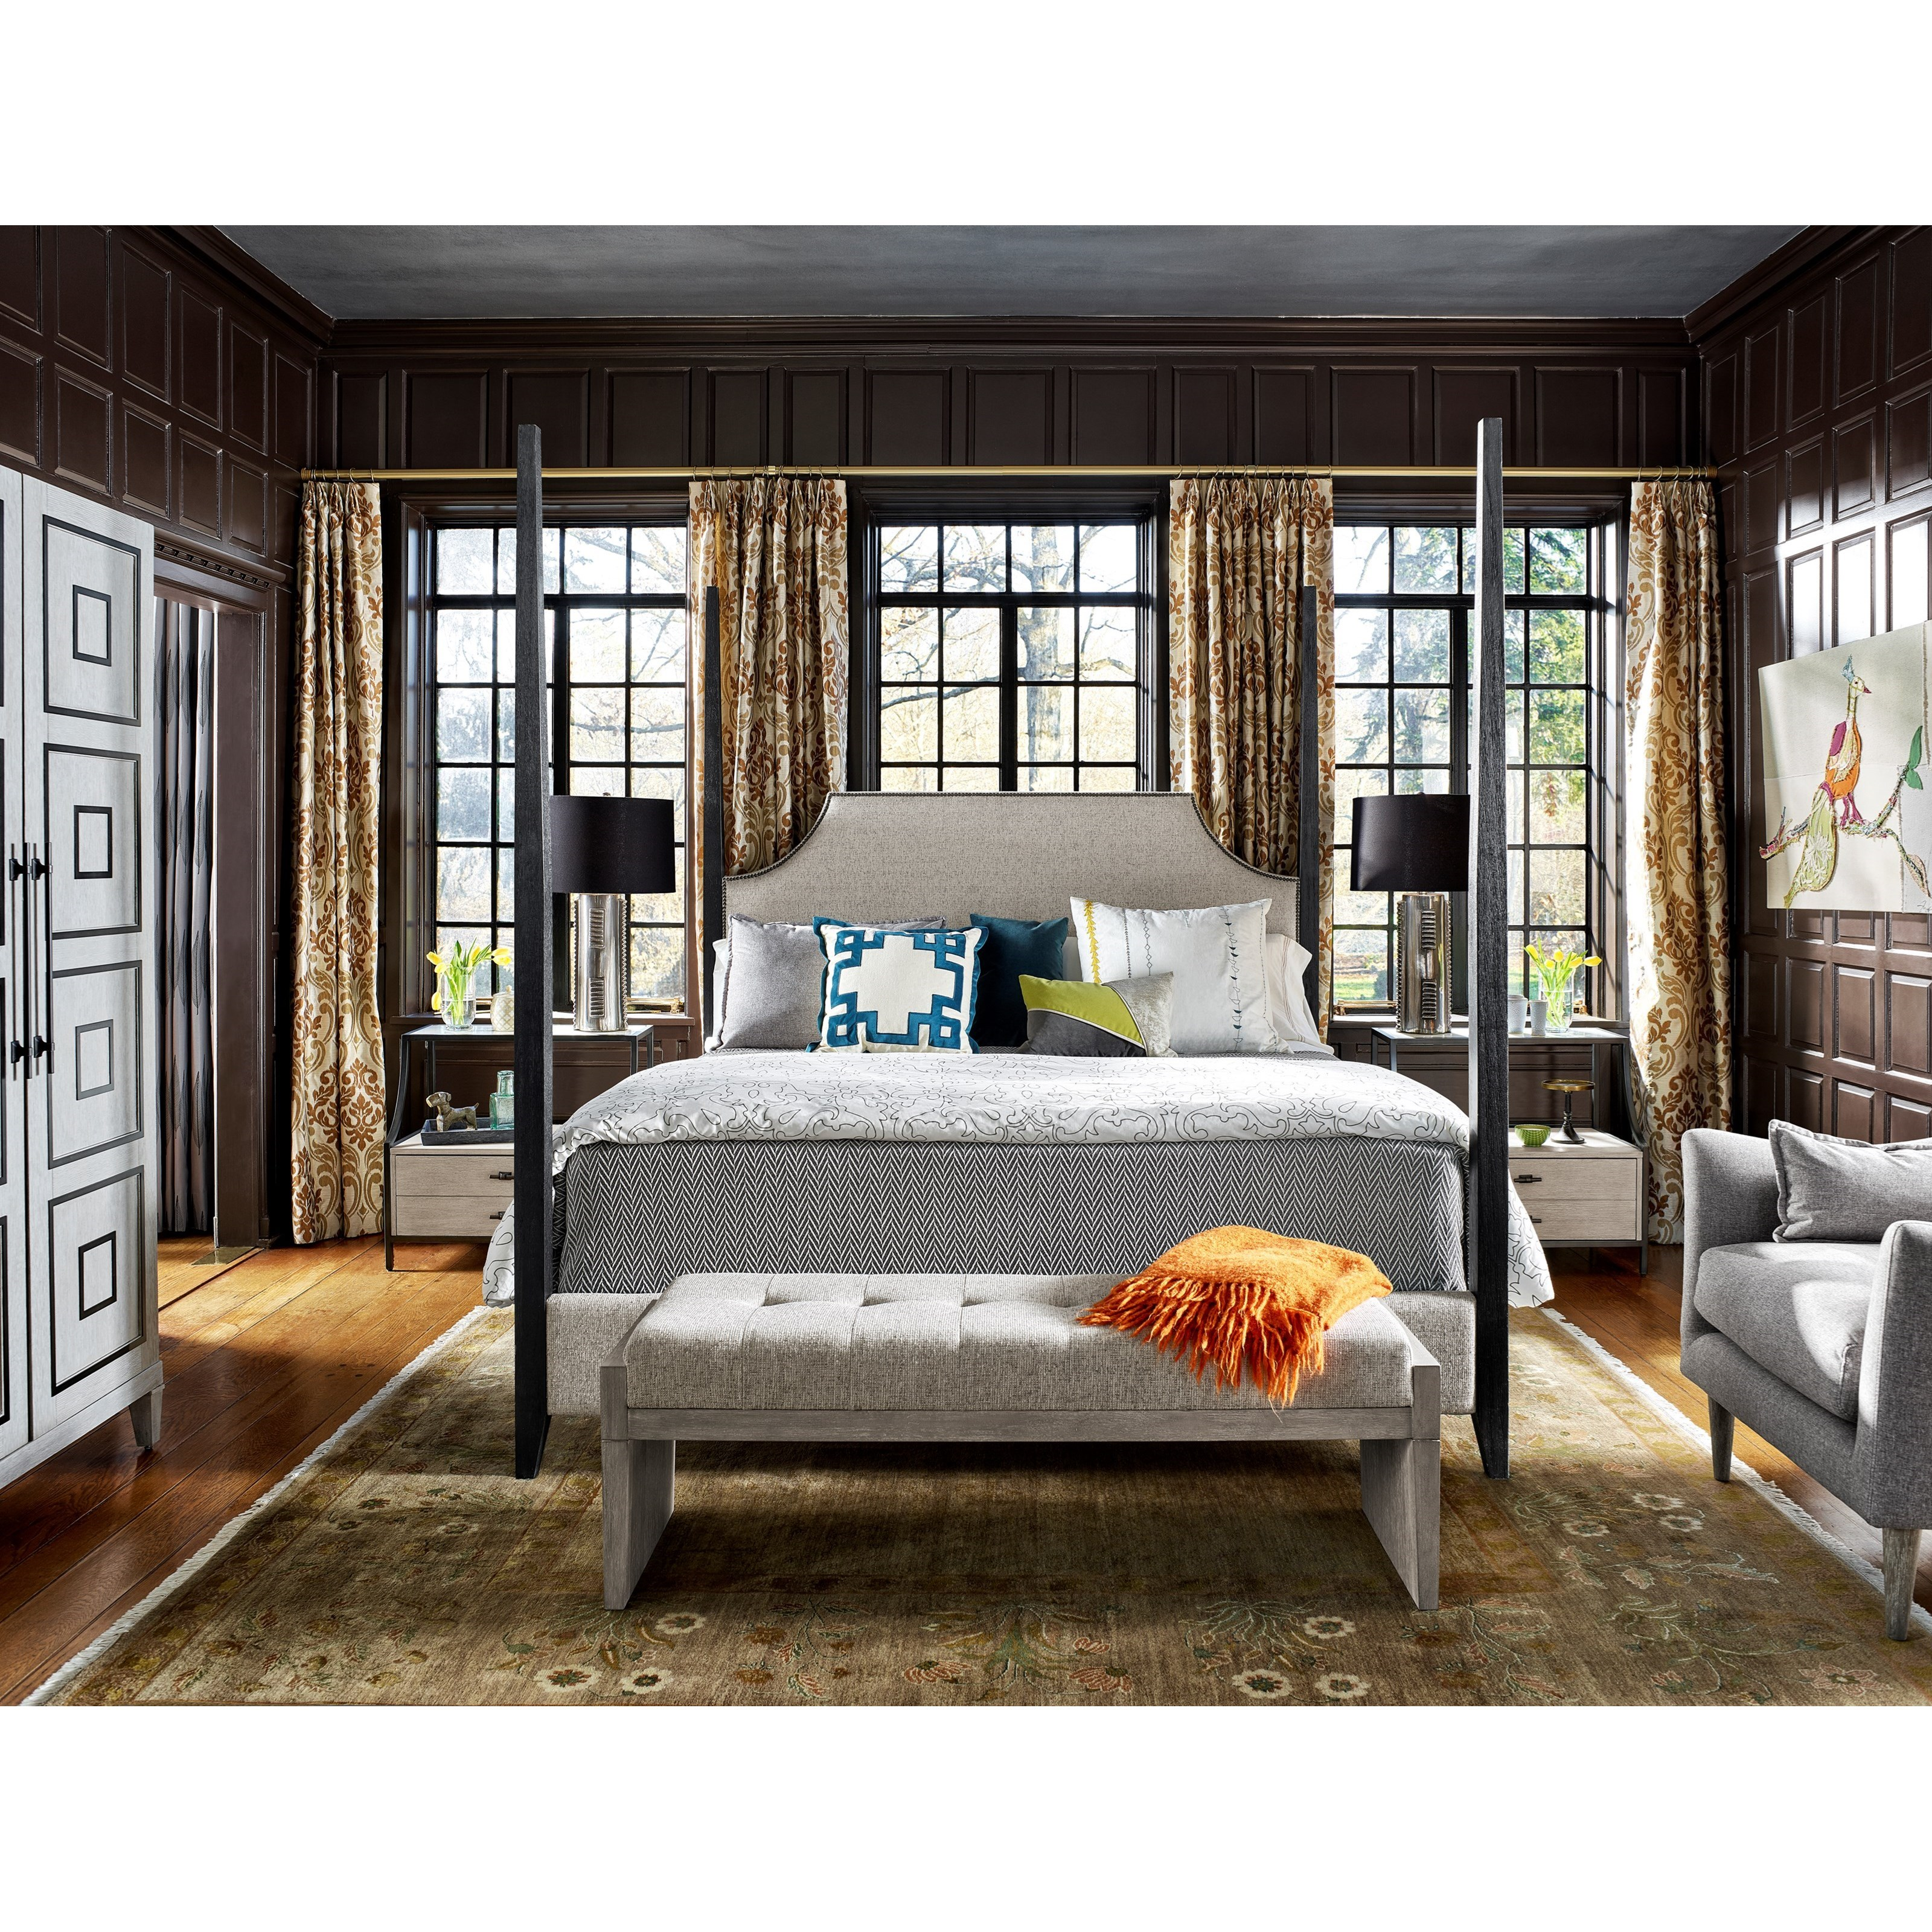 Midtown King Bedroom Group by Universal at Baer's Furniture